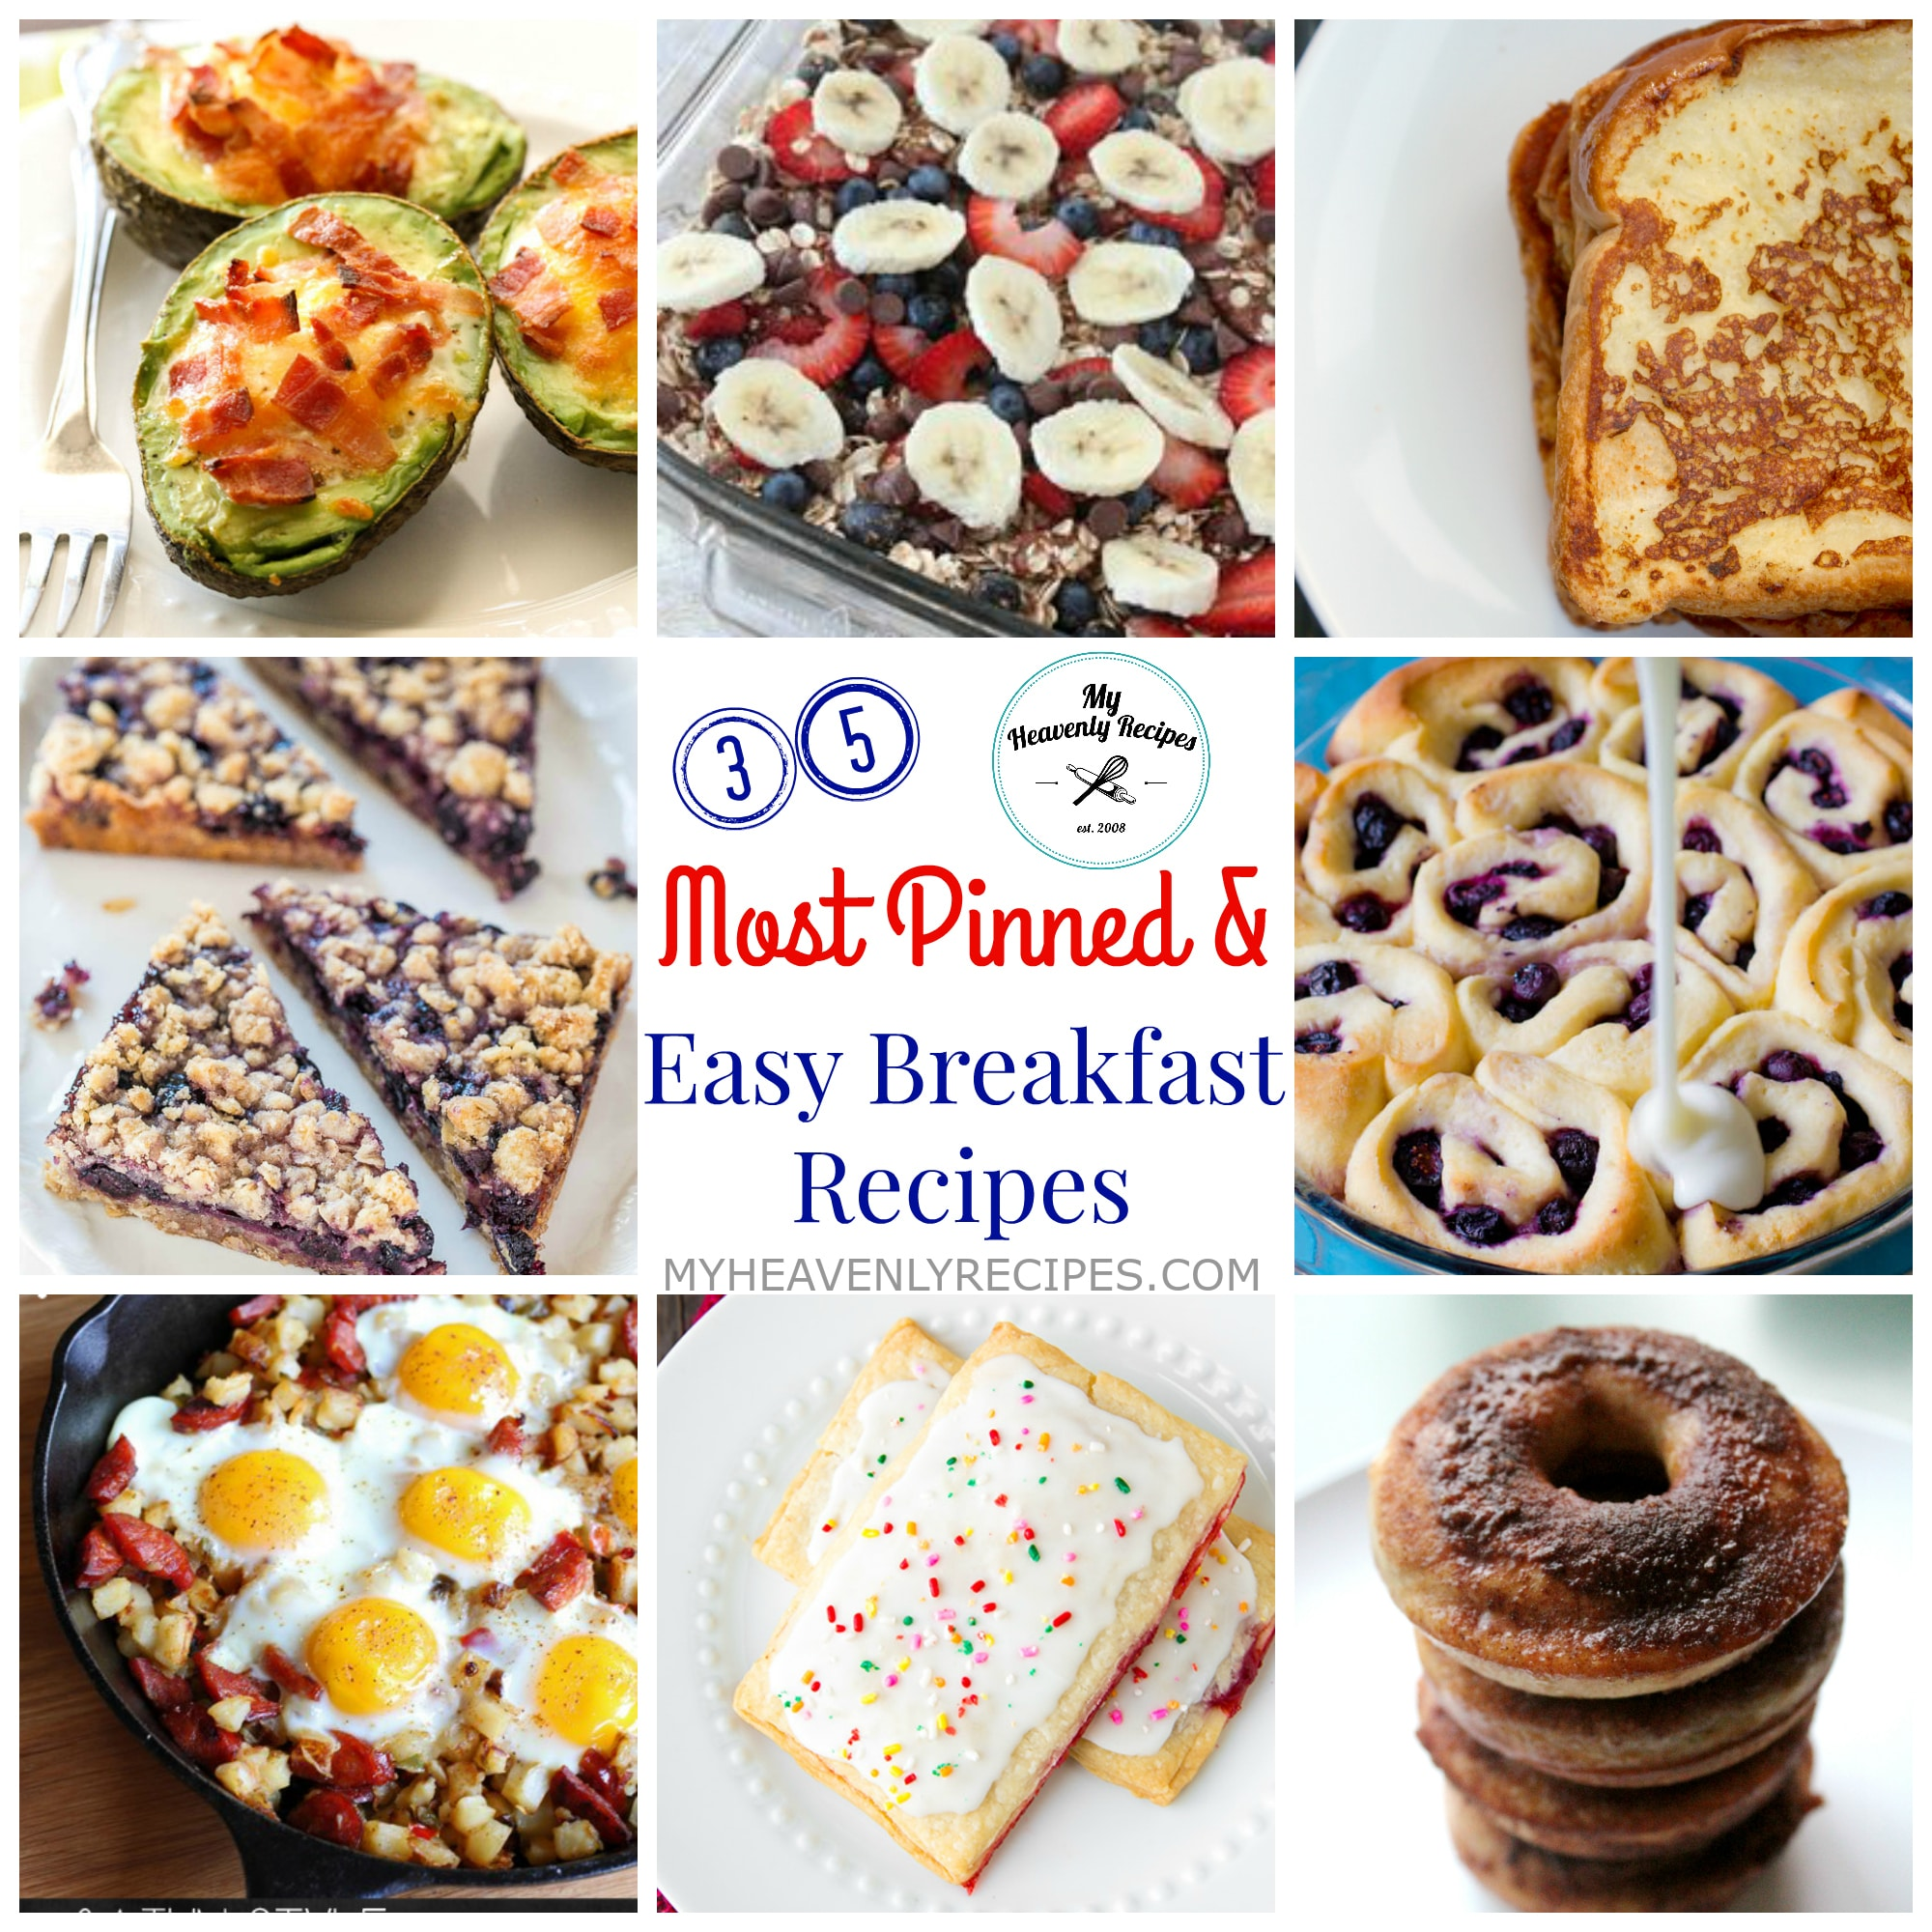 35 Easy Breakfast Recipes & Most Pinned